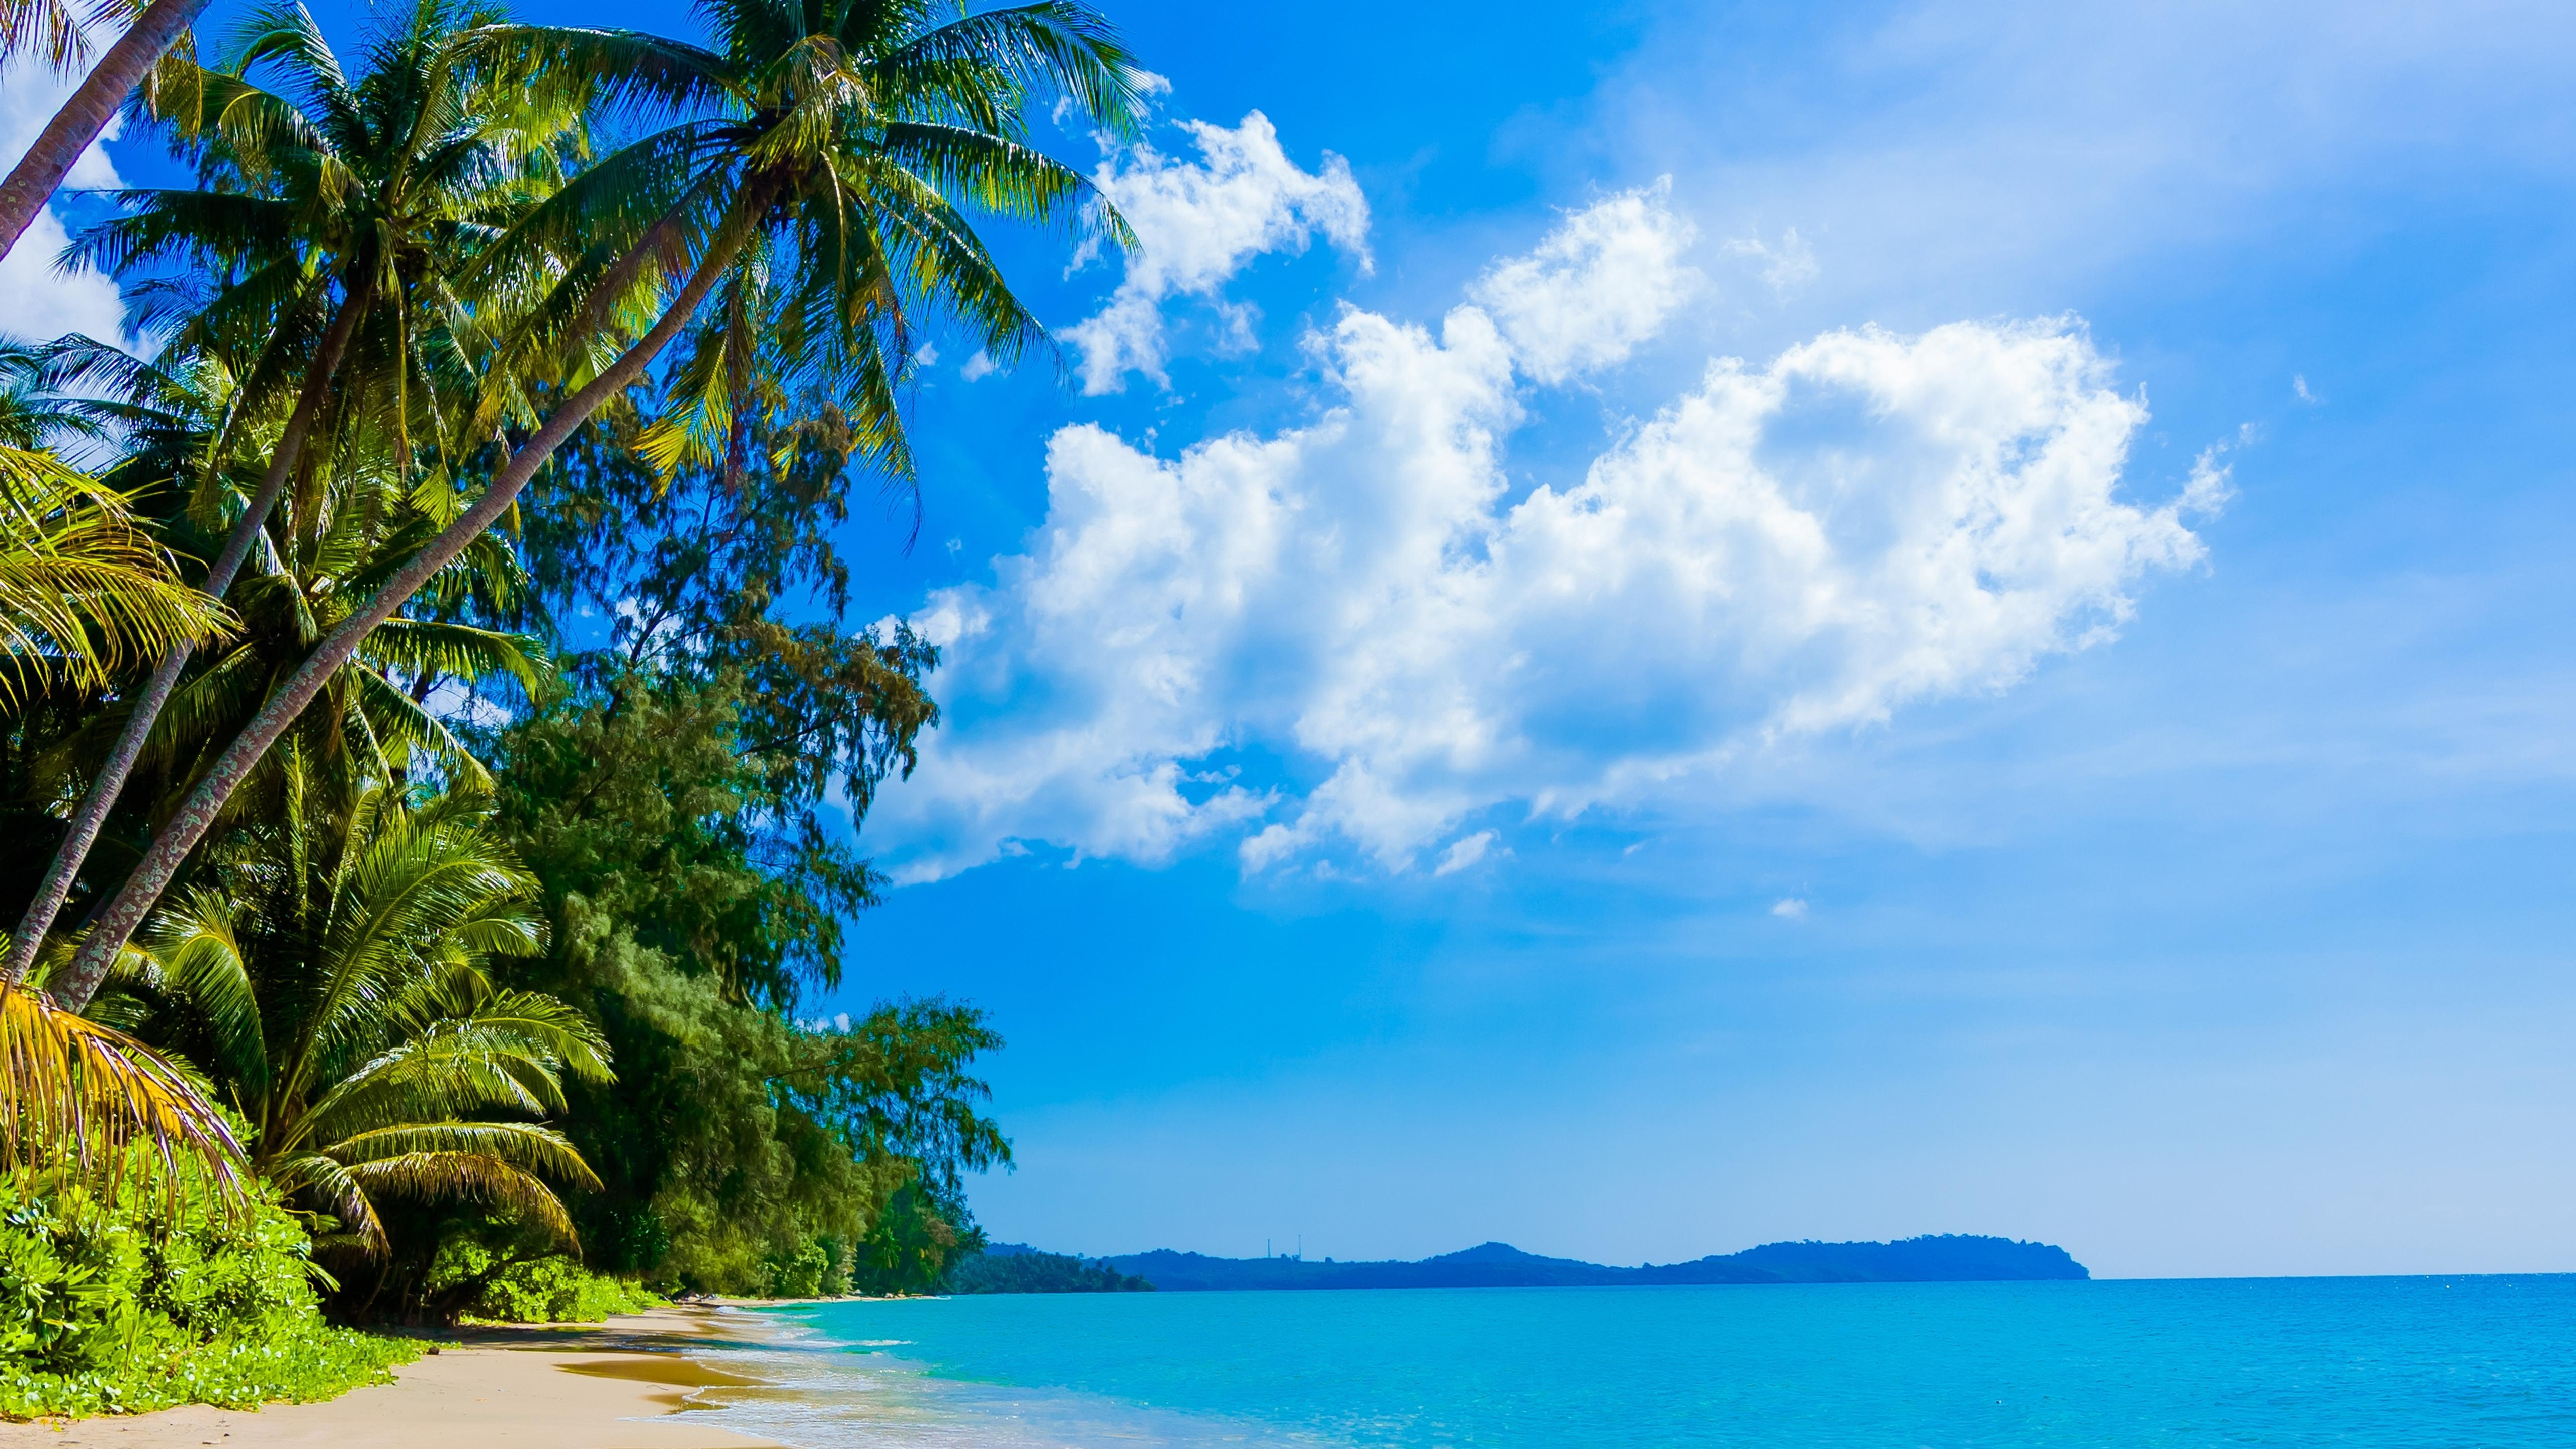 Sunny day on the beach hd wallpaper download 5120x2880 - Sunny day wallpaper ...